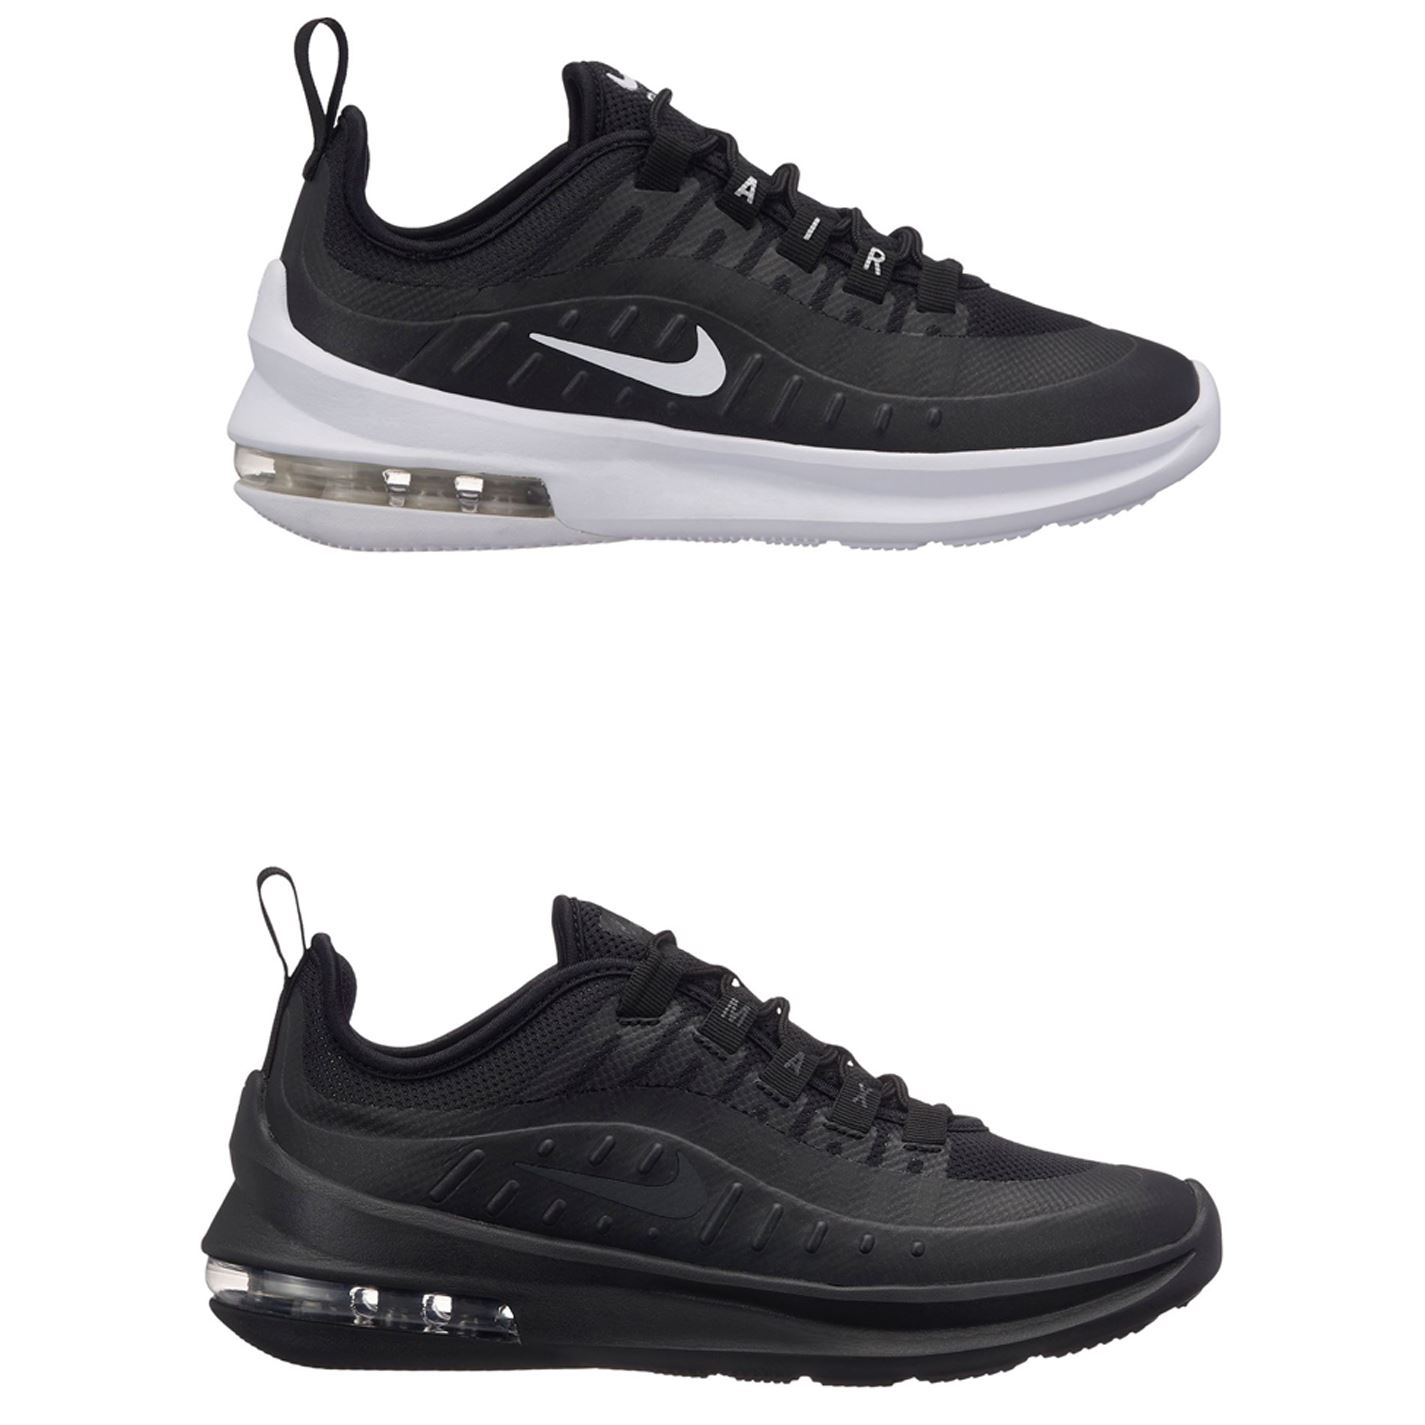 Details about Nike Air Max Axis Junior Boys Trainers Shoes Footwear